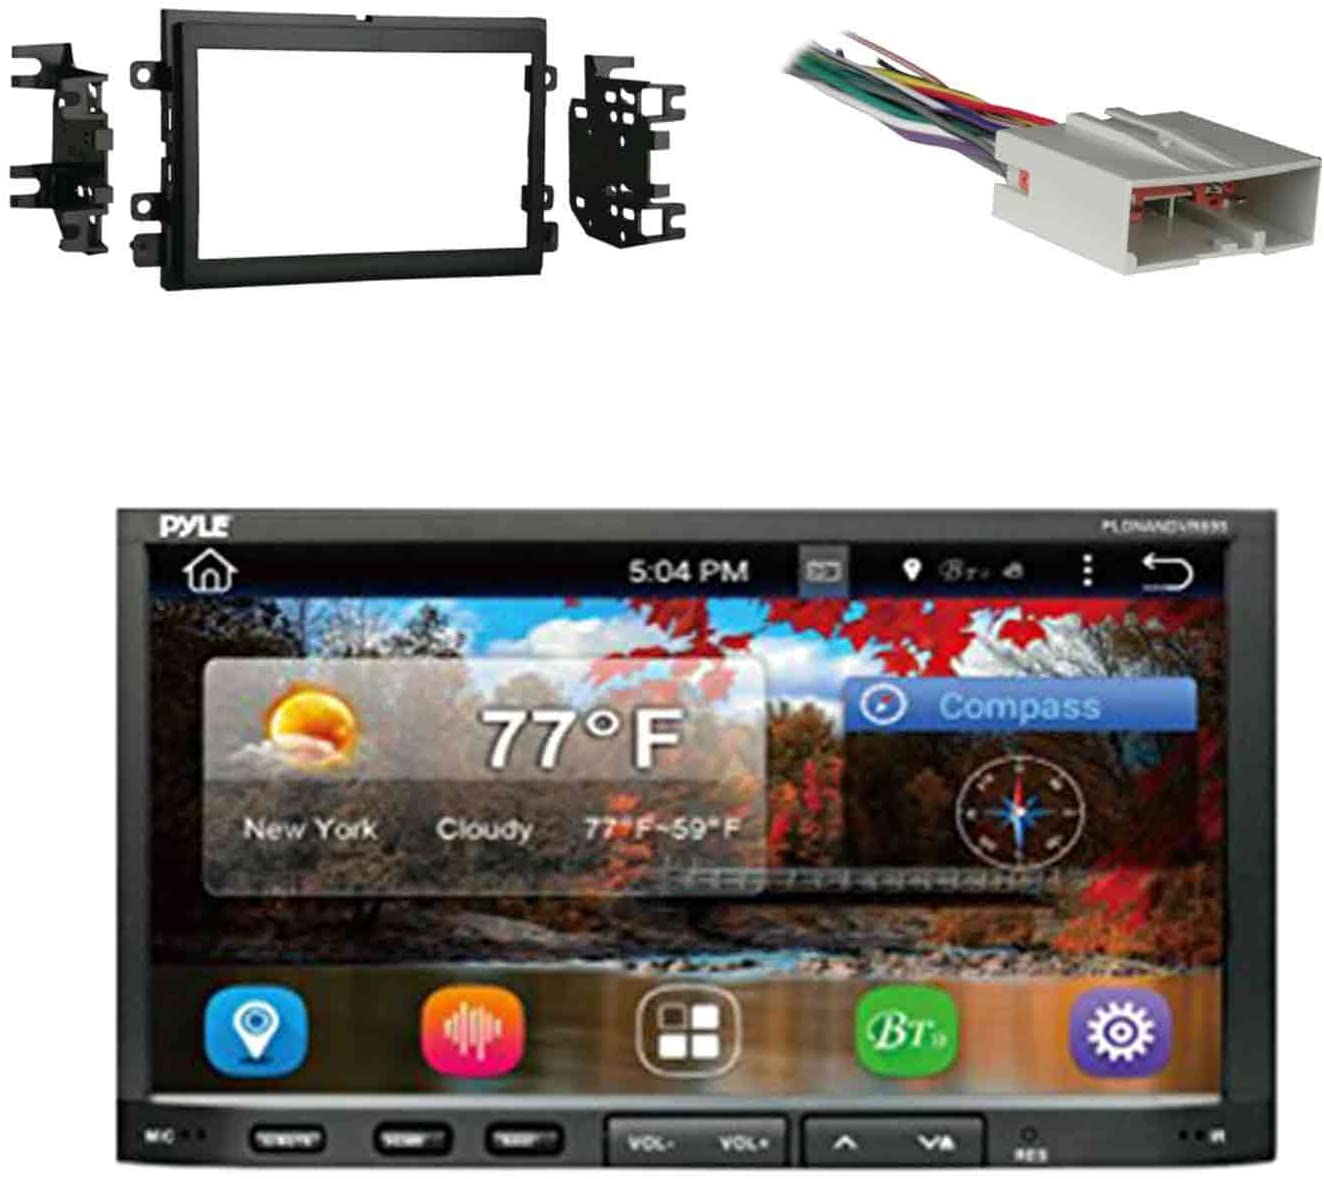 Blac Metra 95-5812 Double DIN Installation Kit for Select 2004-up Ford Vehicles